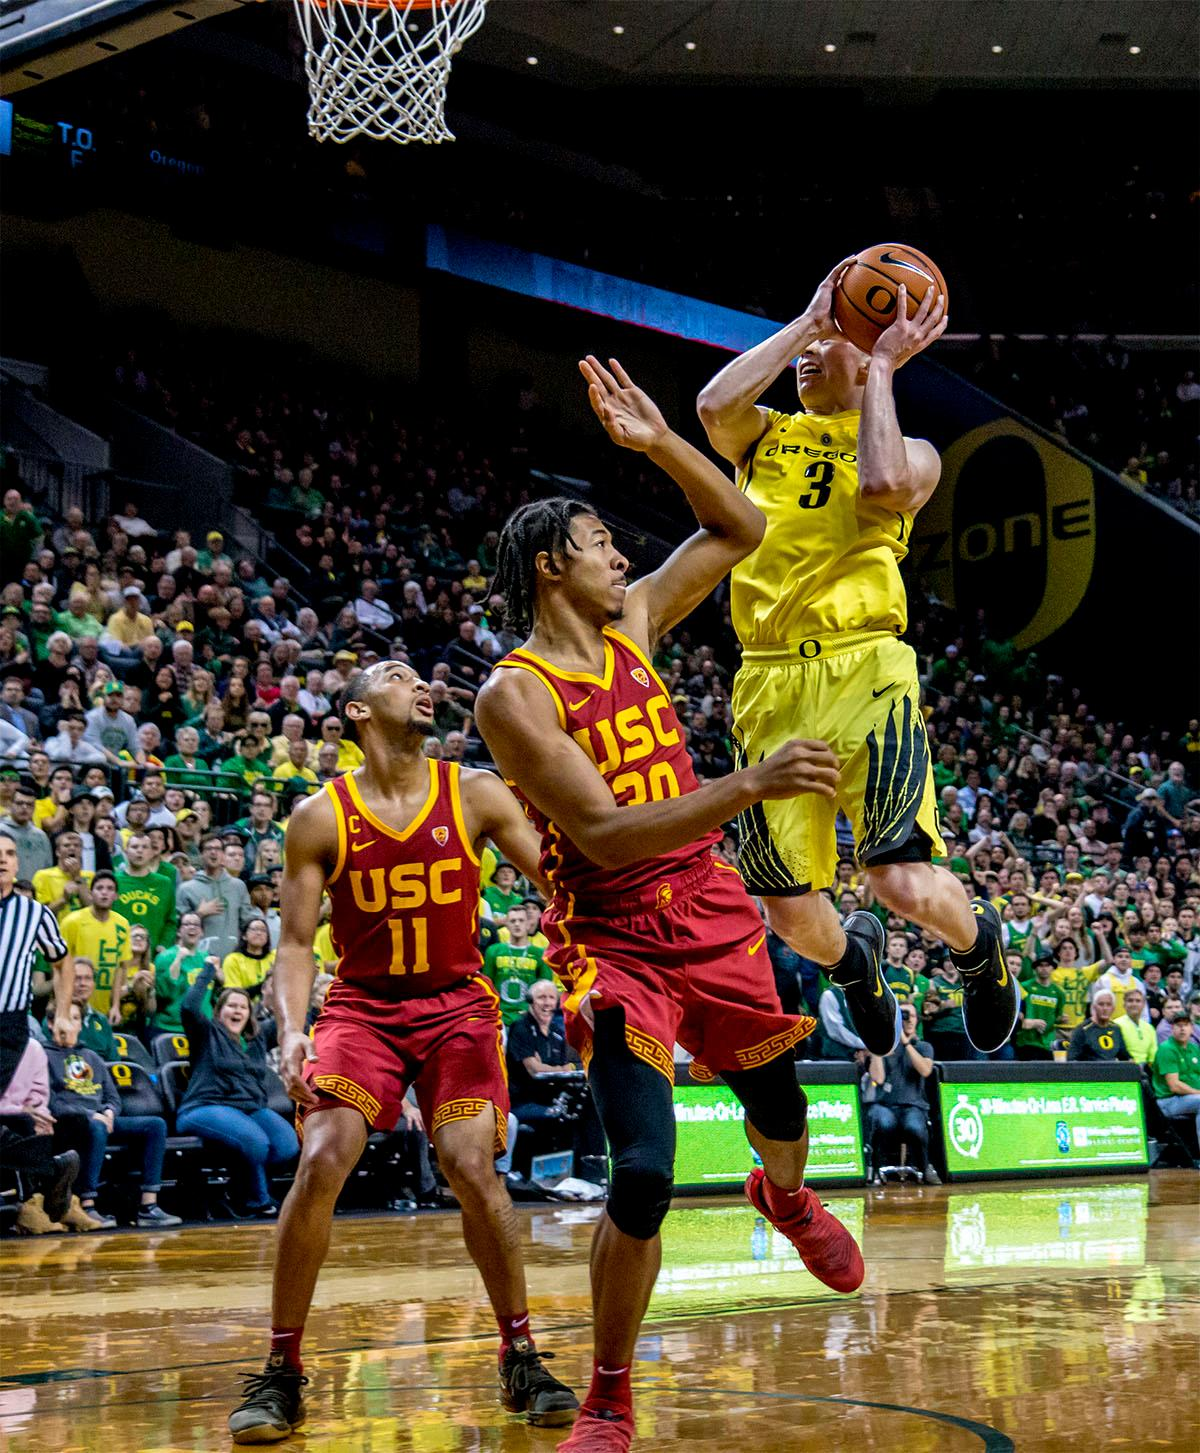 The Duck's Payton Pritchard (#3) takes a jump to score a basket. The UO Ducks basketball team suffered a loss to the USC Trojans, 75-70, at Matthew Knight Arena on Thursday. Payton Pritchard lead the scoring with 18 points. The Ducks are now 2-4 in conference play and 12-7 overall. The Ducks will next play the UCLA at Matthew Knight Arena at 7:15 p.m. on Saturday, Jan. 20. Photo by August Frank, Oregon News Lab